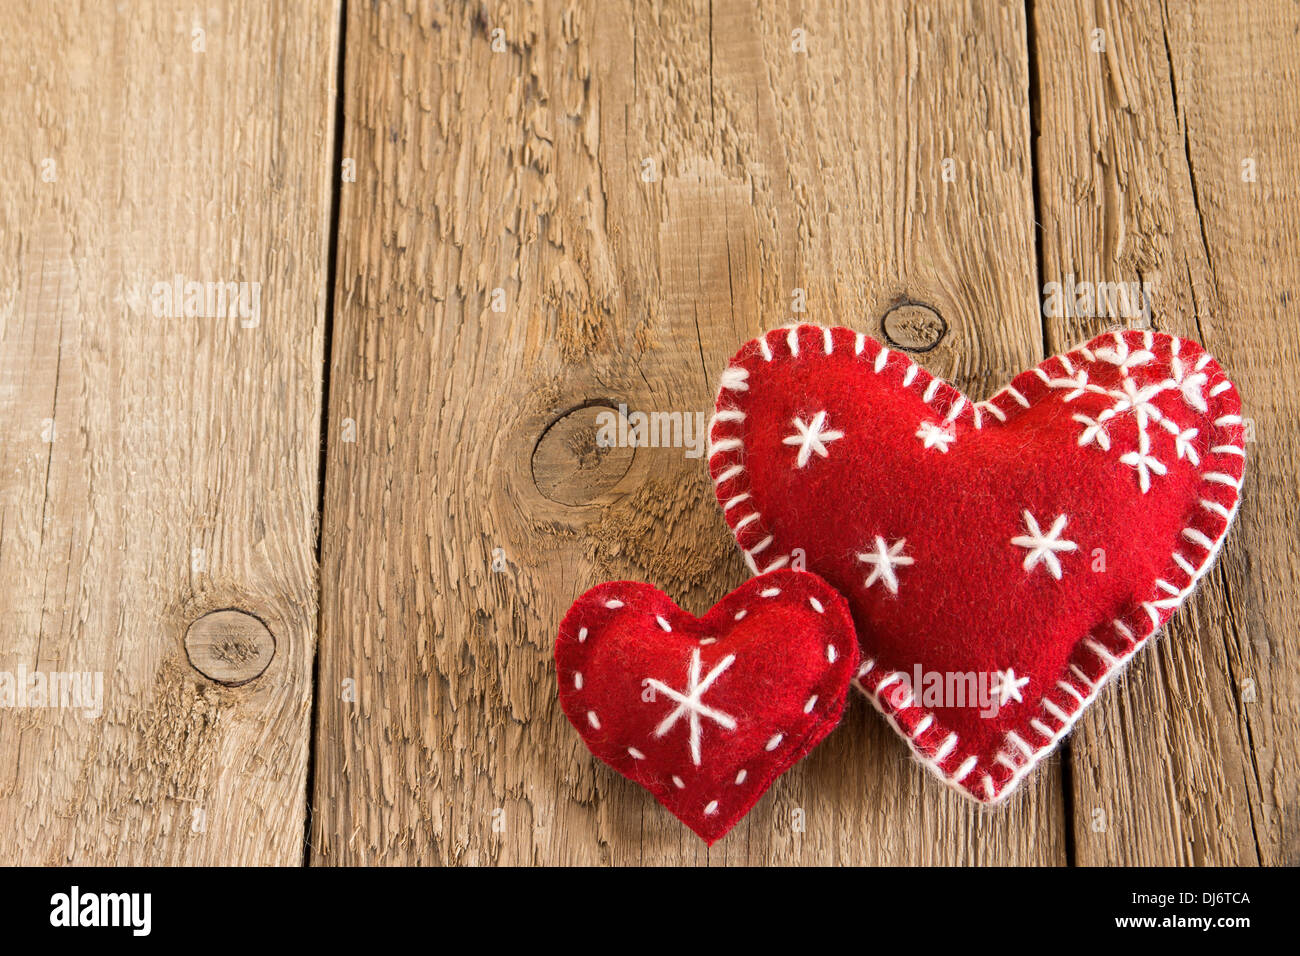 Christmas concept (decoration). Two red handmade hearts over rustic wooden background (texture) close up, horizontal. - Stock Image